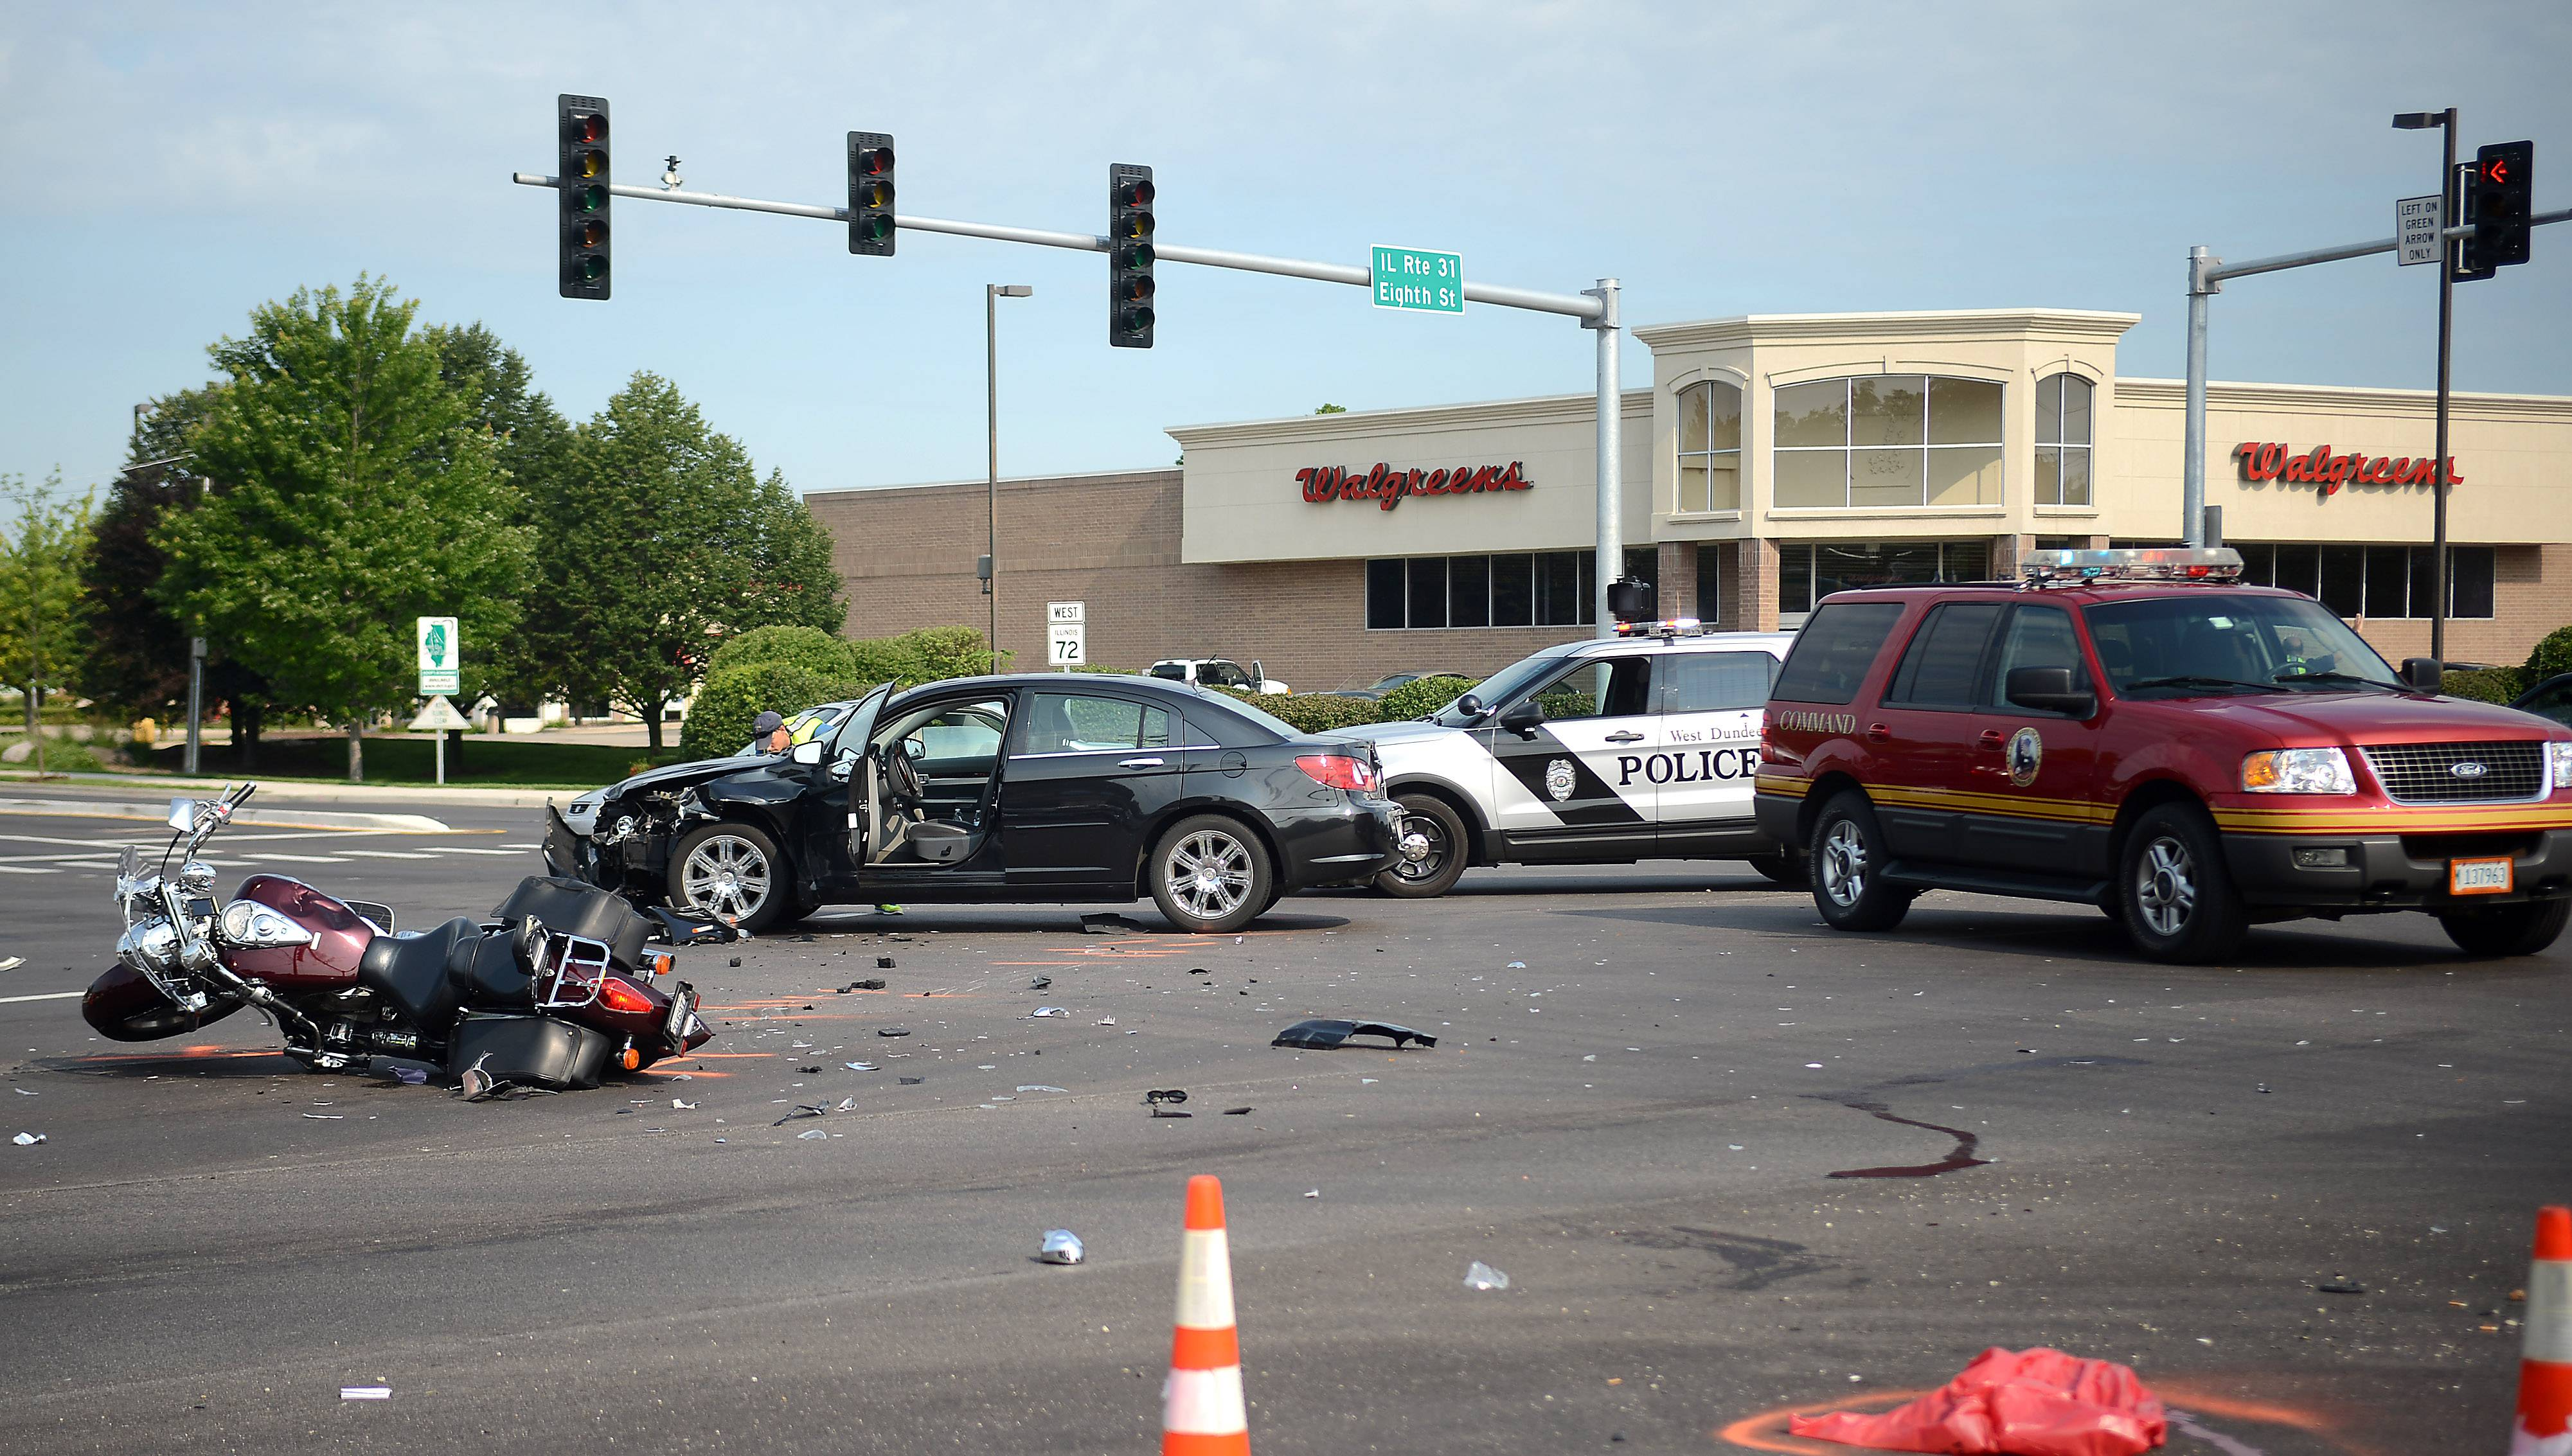 Jiffy Lube technician Mackenzy Krogh said the driver of a motorcycle was hurled about 15 to 20 feet after his motorcycle collided with a Chrysler Sebring Friday at routes 72 and 31 in West Dundee.